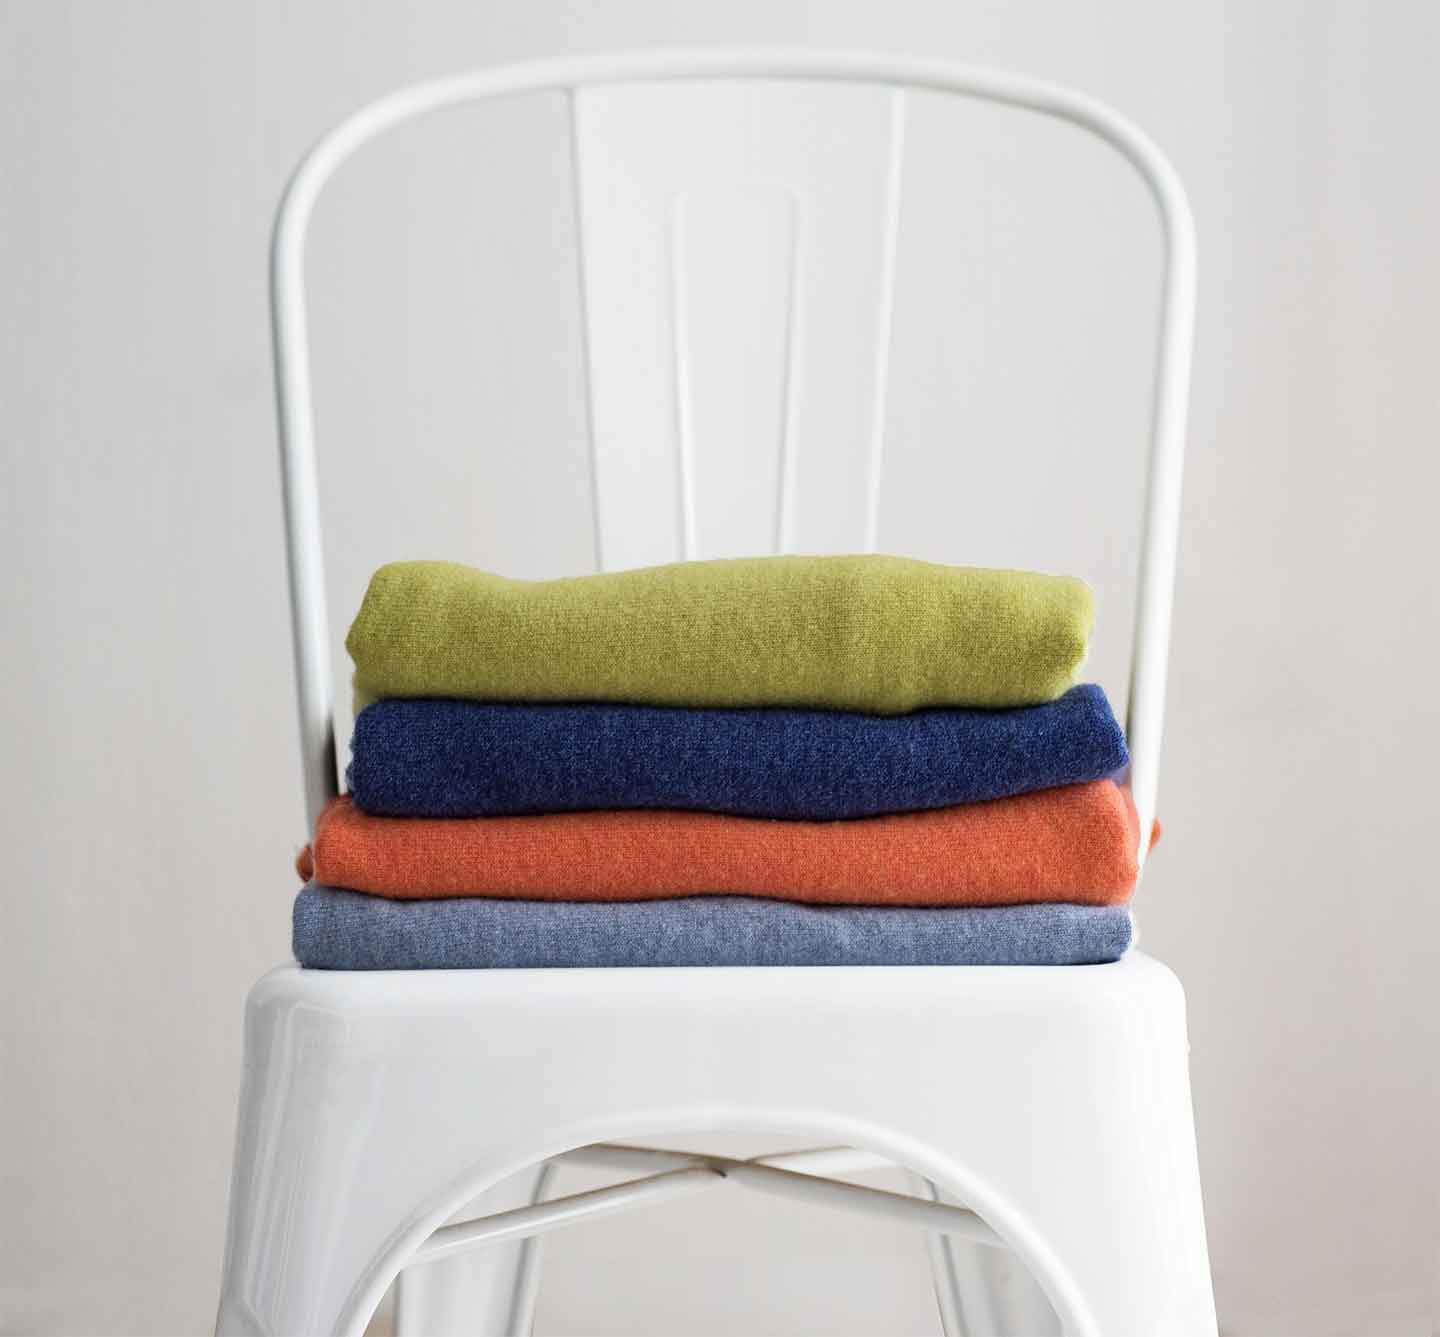 Folder-cashmere-jumpers-stacked-on-a-white-chair-in-front-of-a-white-wall